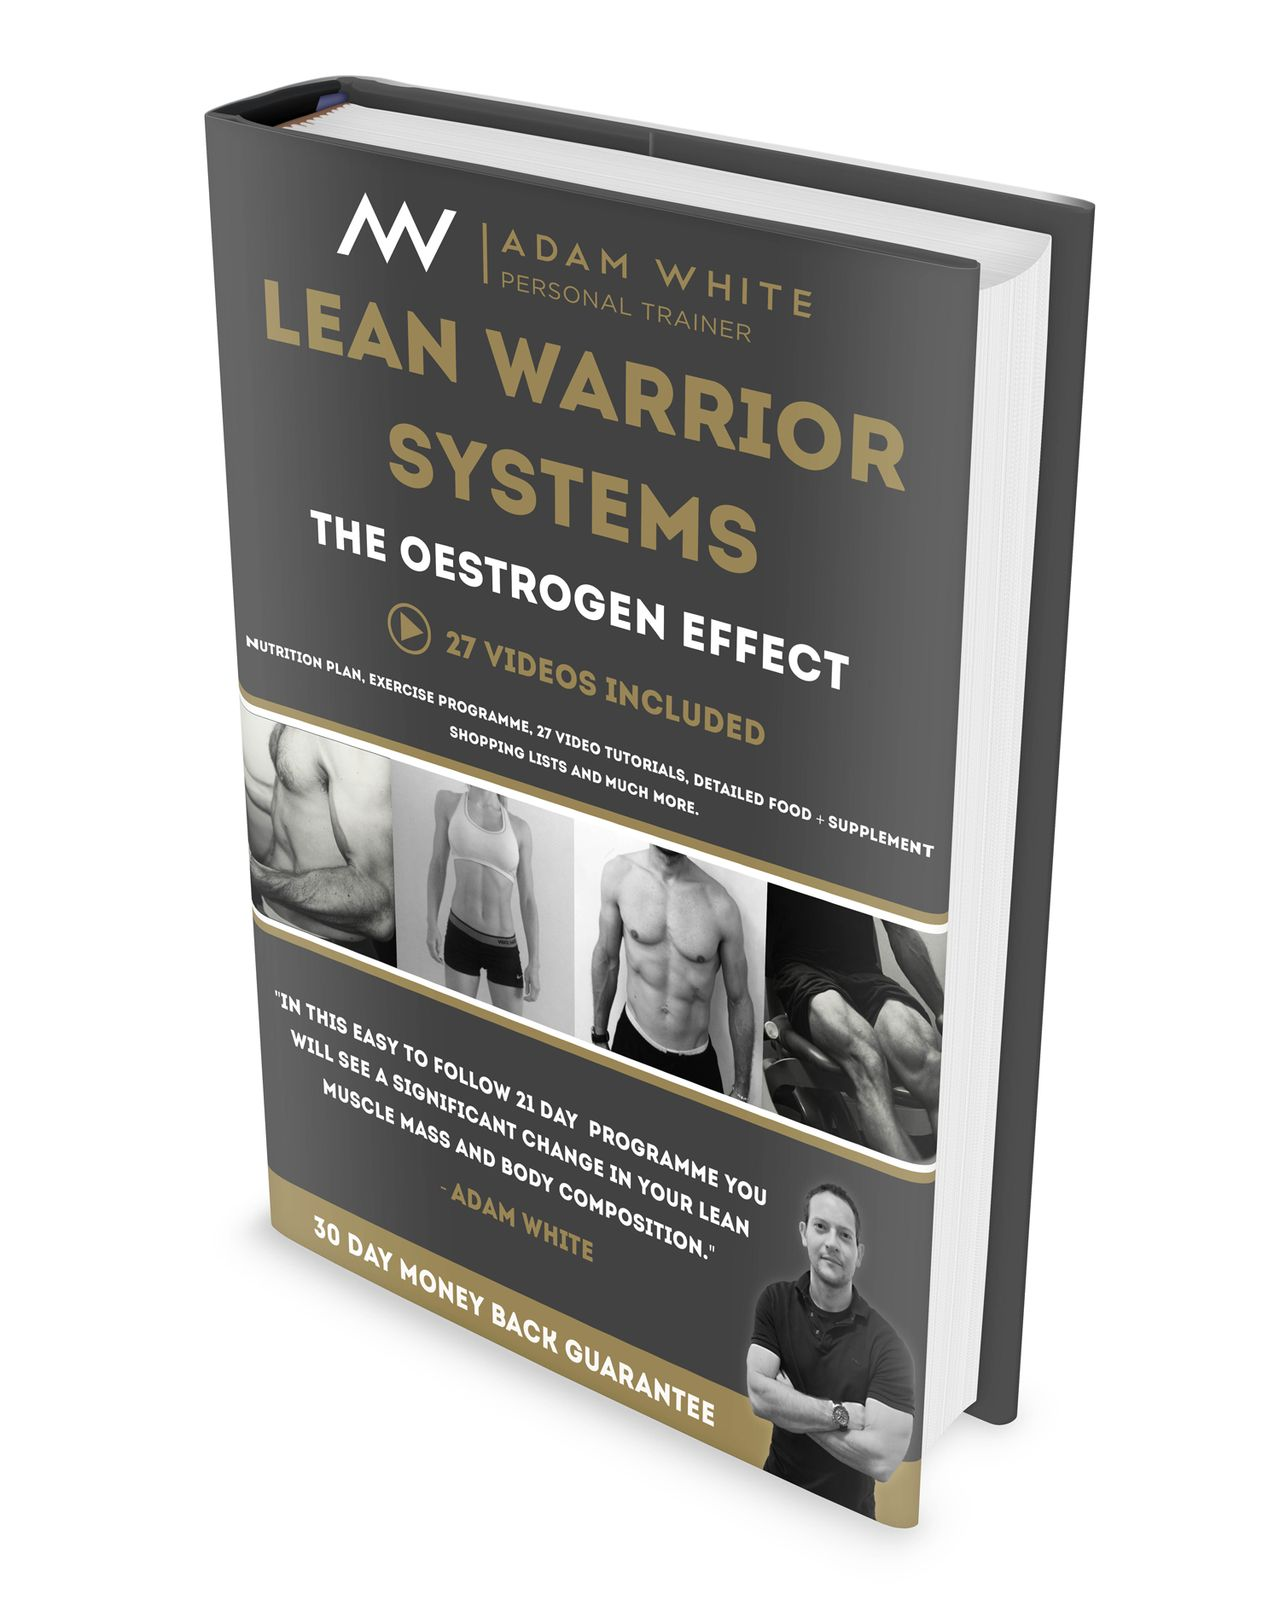 Lean Warrior Programme - Combating The Oestrogen Effect